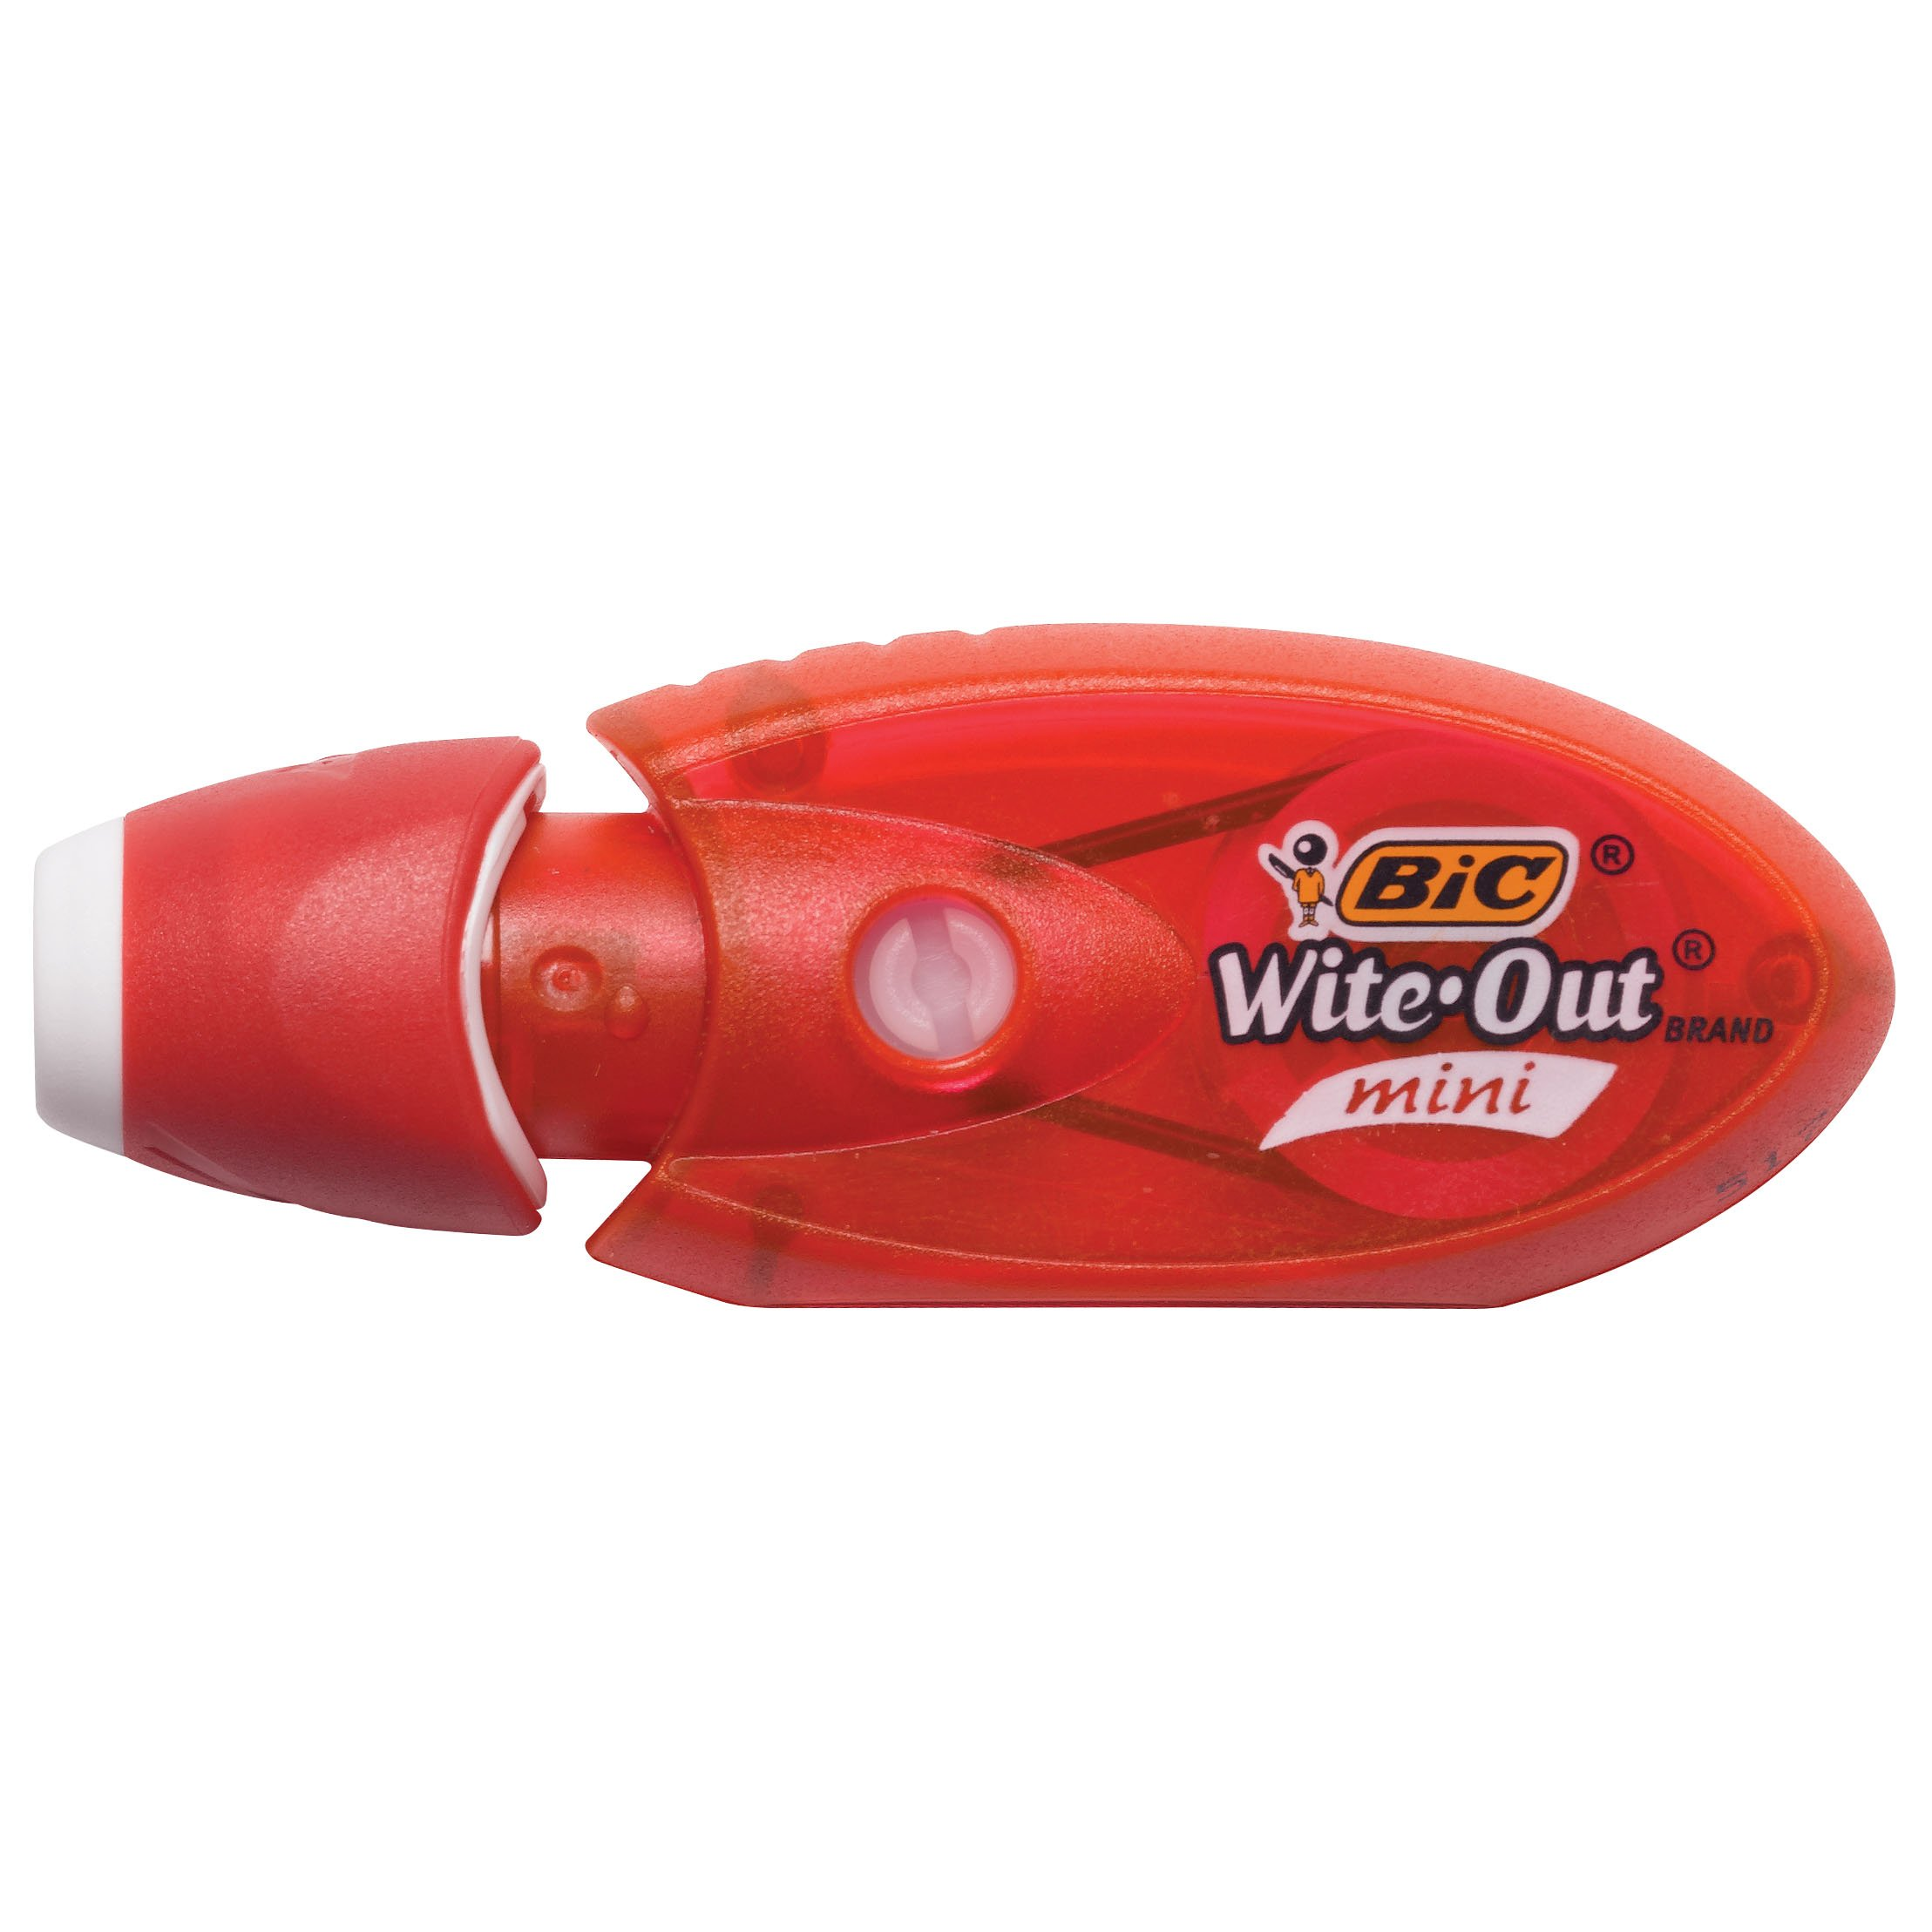 BIC Wite-Out Brand Mini Twist Correction Tape, White, 2-Count (WOMTP21) by BIC (Image #3)